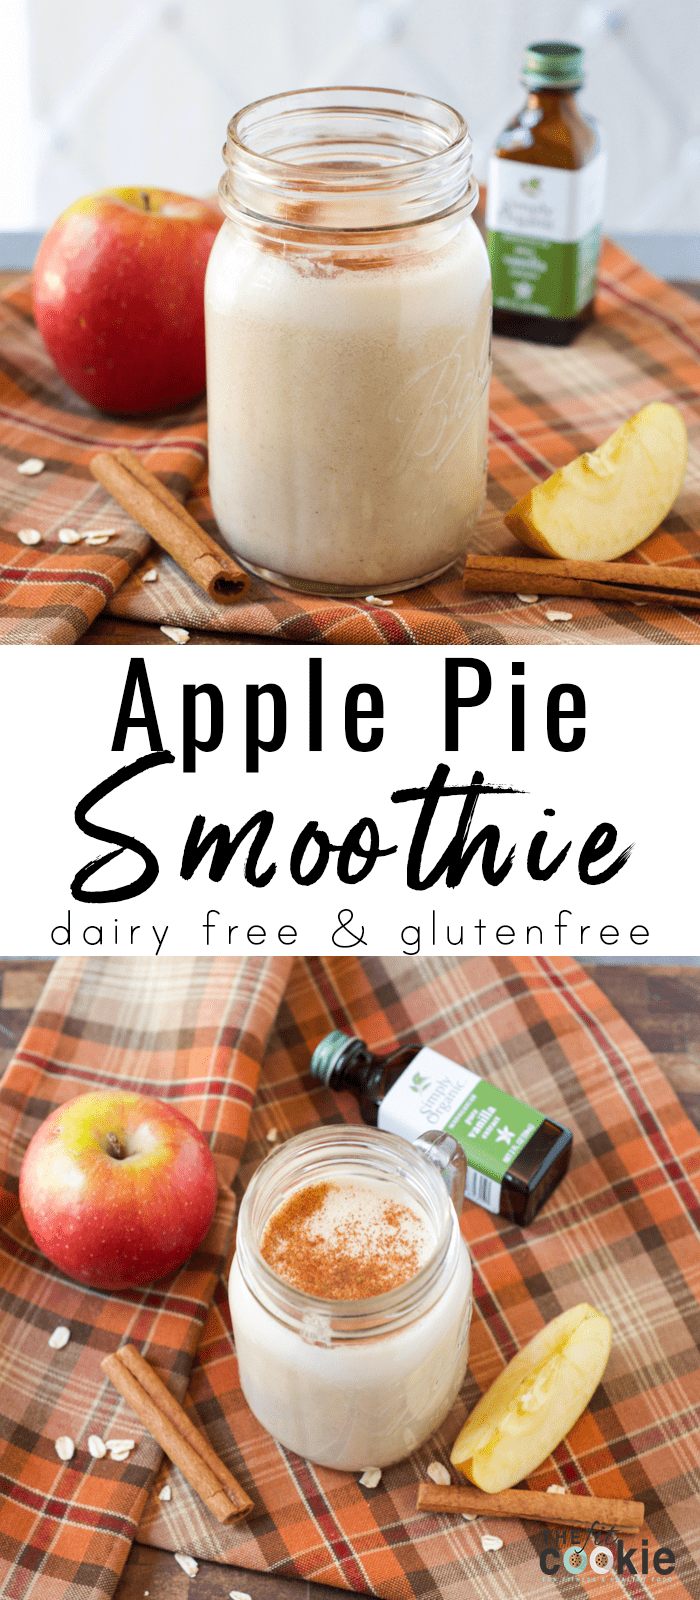 image collage of vegan gluten free apple pie smoothie in a canning jar